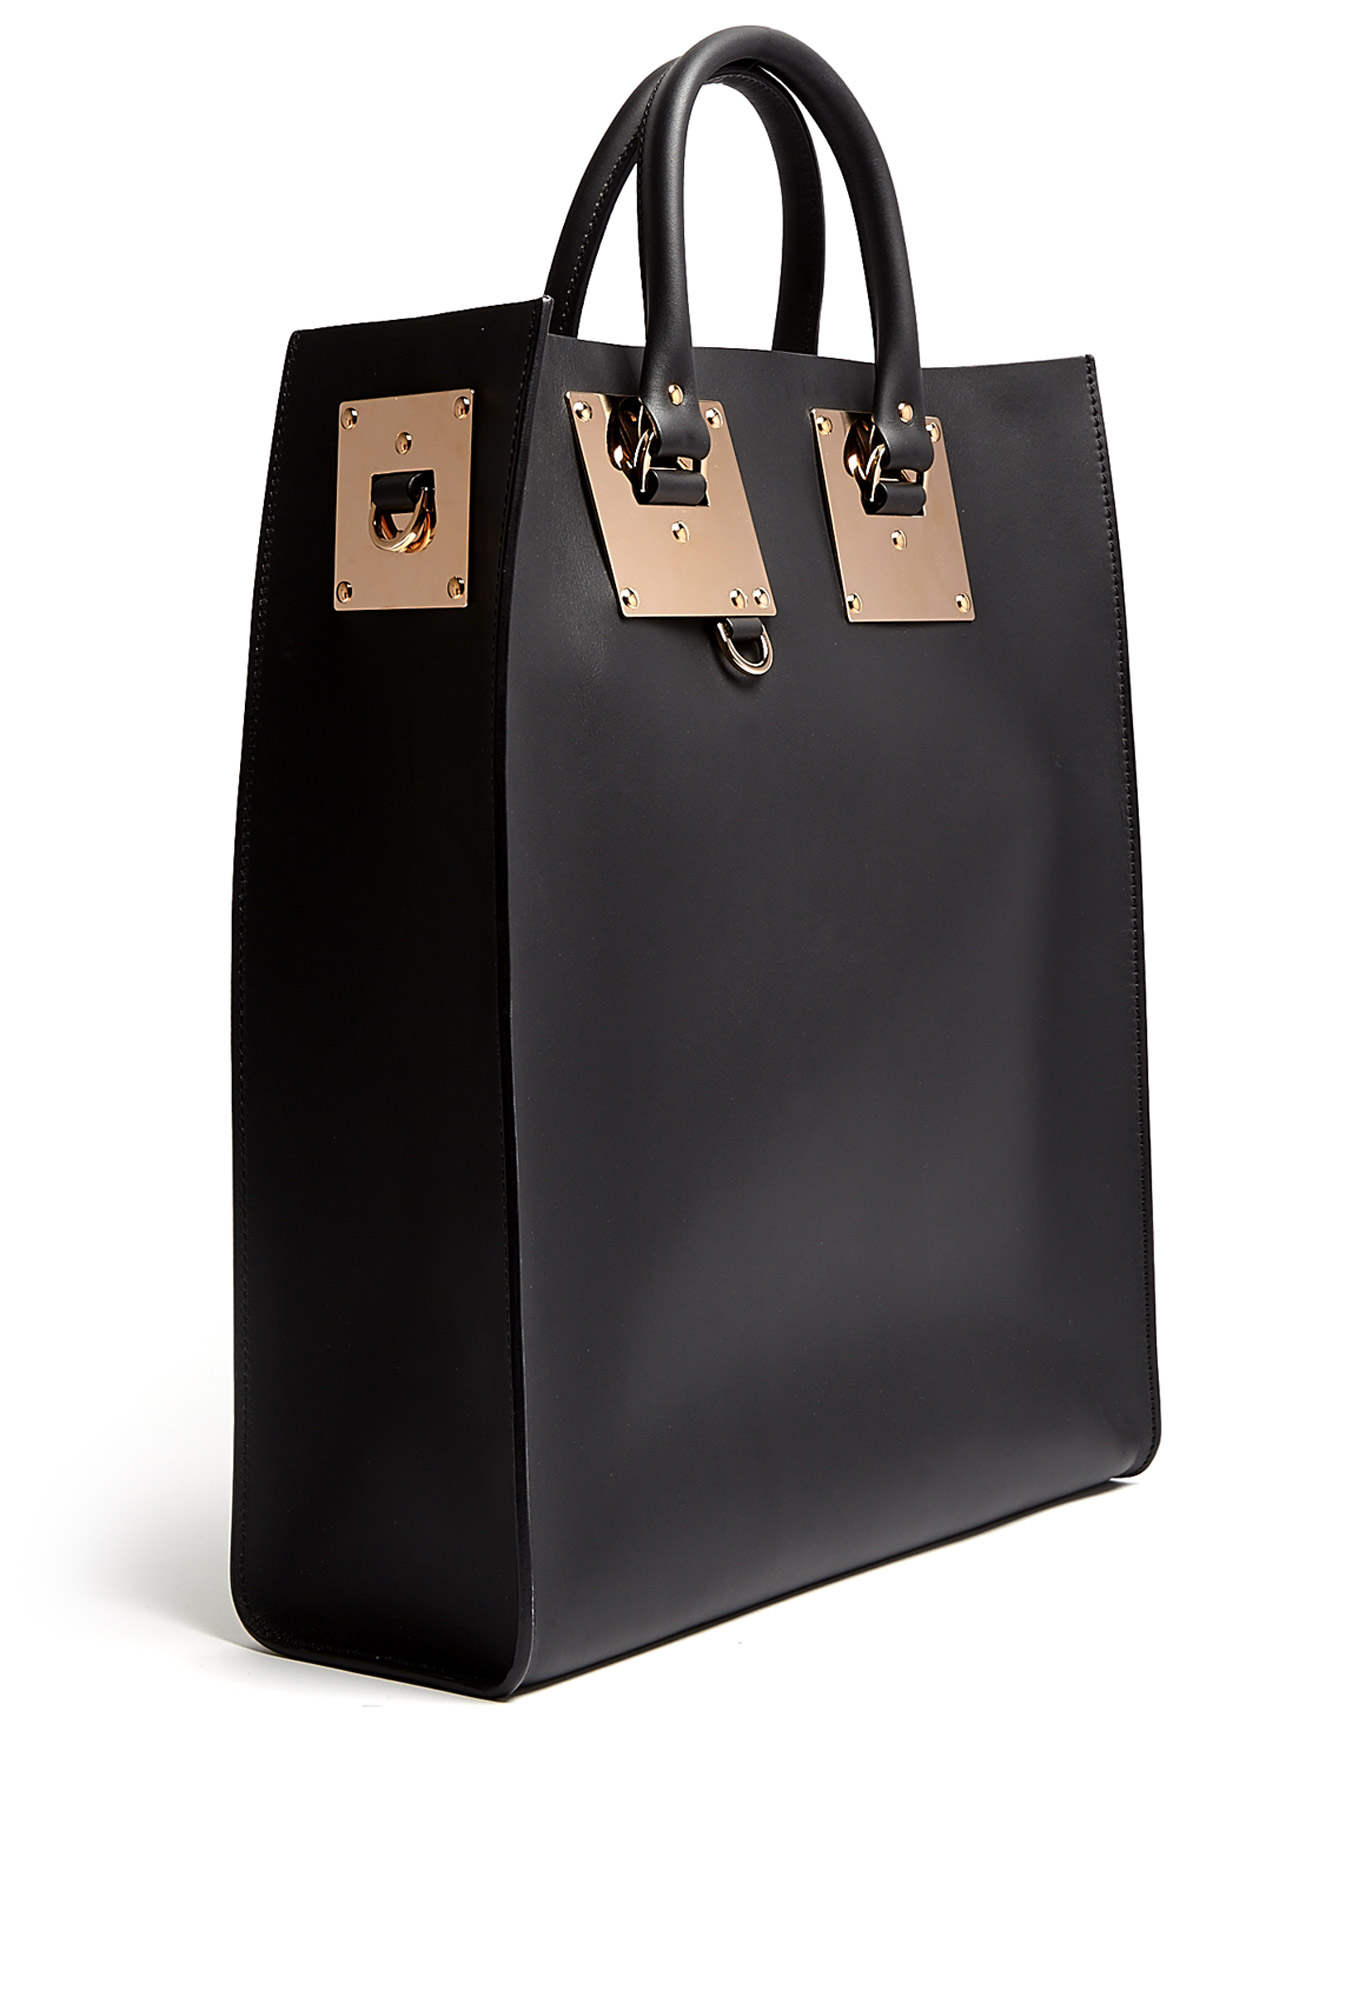 Sophie Hulme | Large Leather Tote Bag by Sophie Hulme